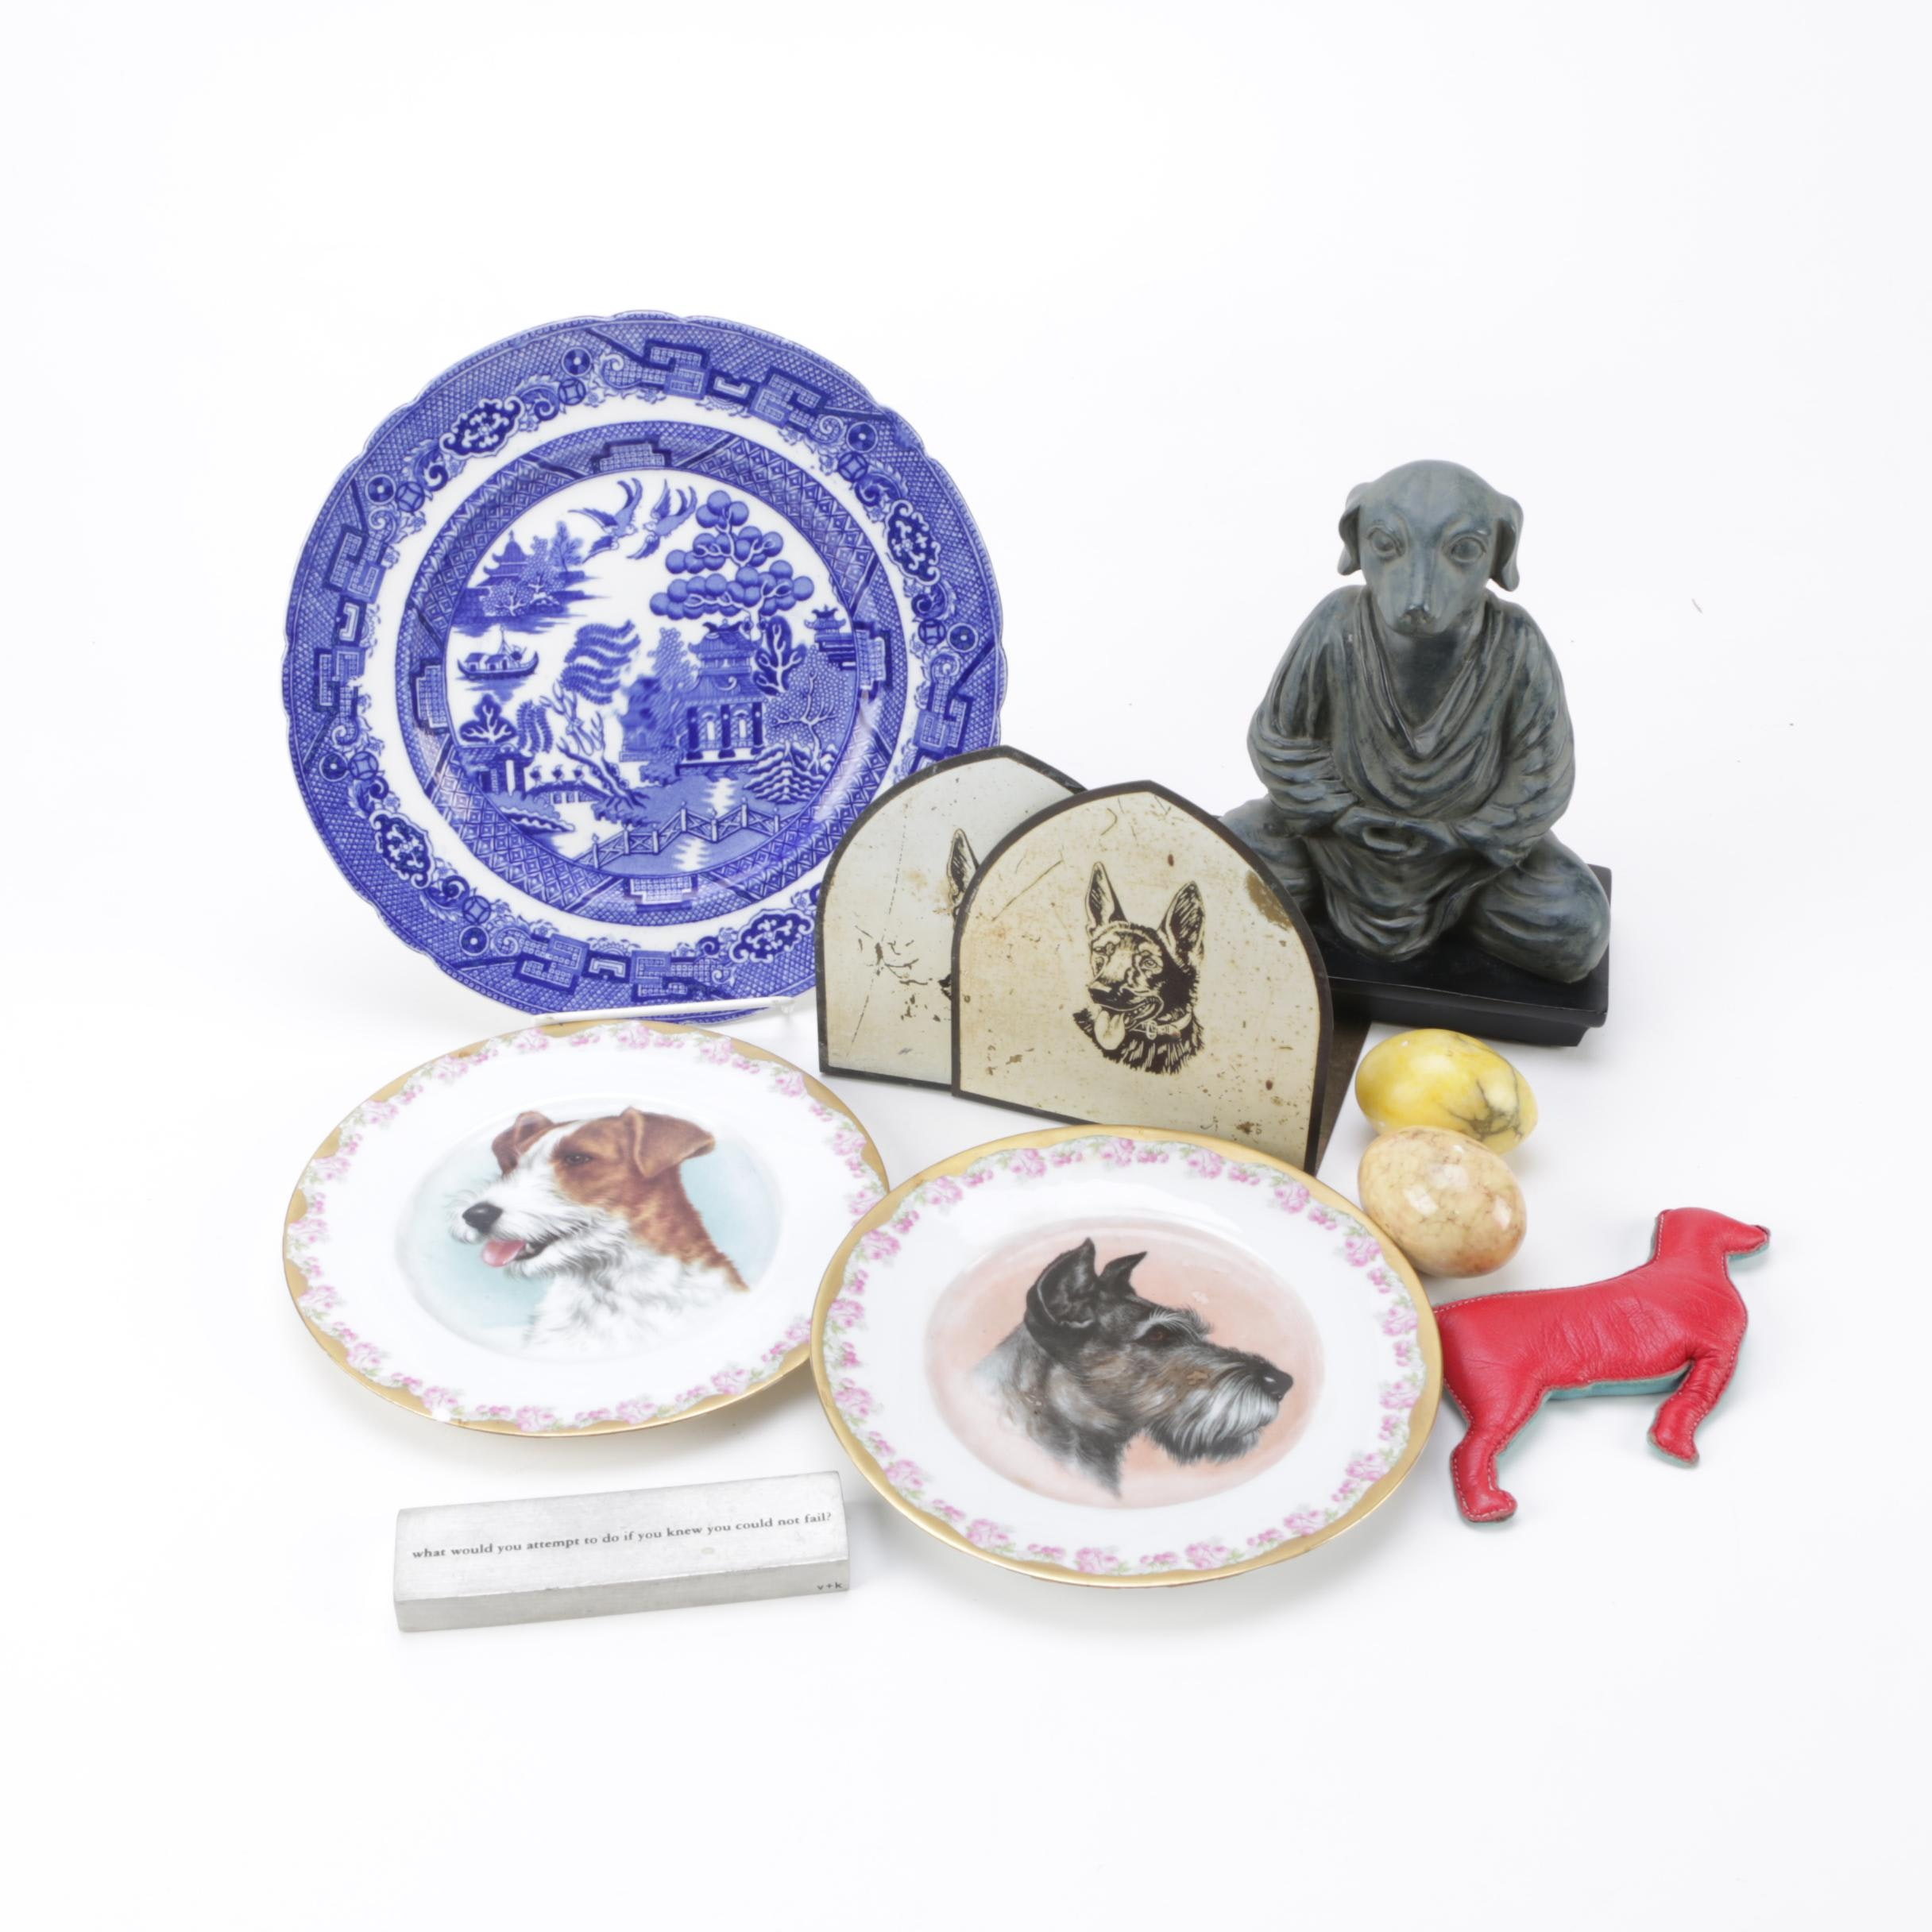 Dog-Themed Decorative Pieces with Additional Décor